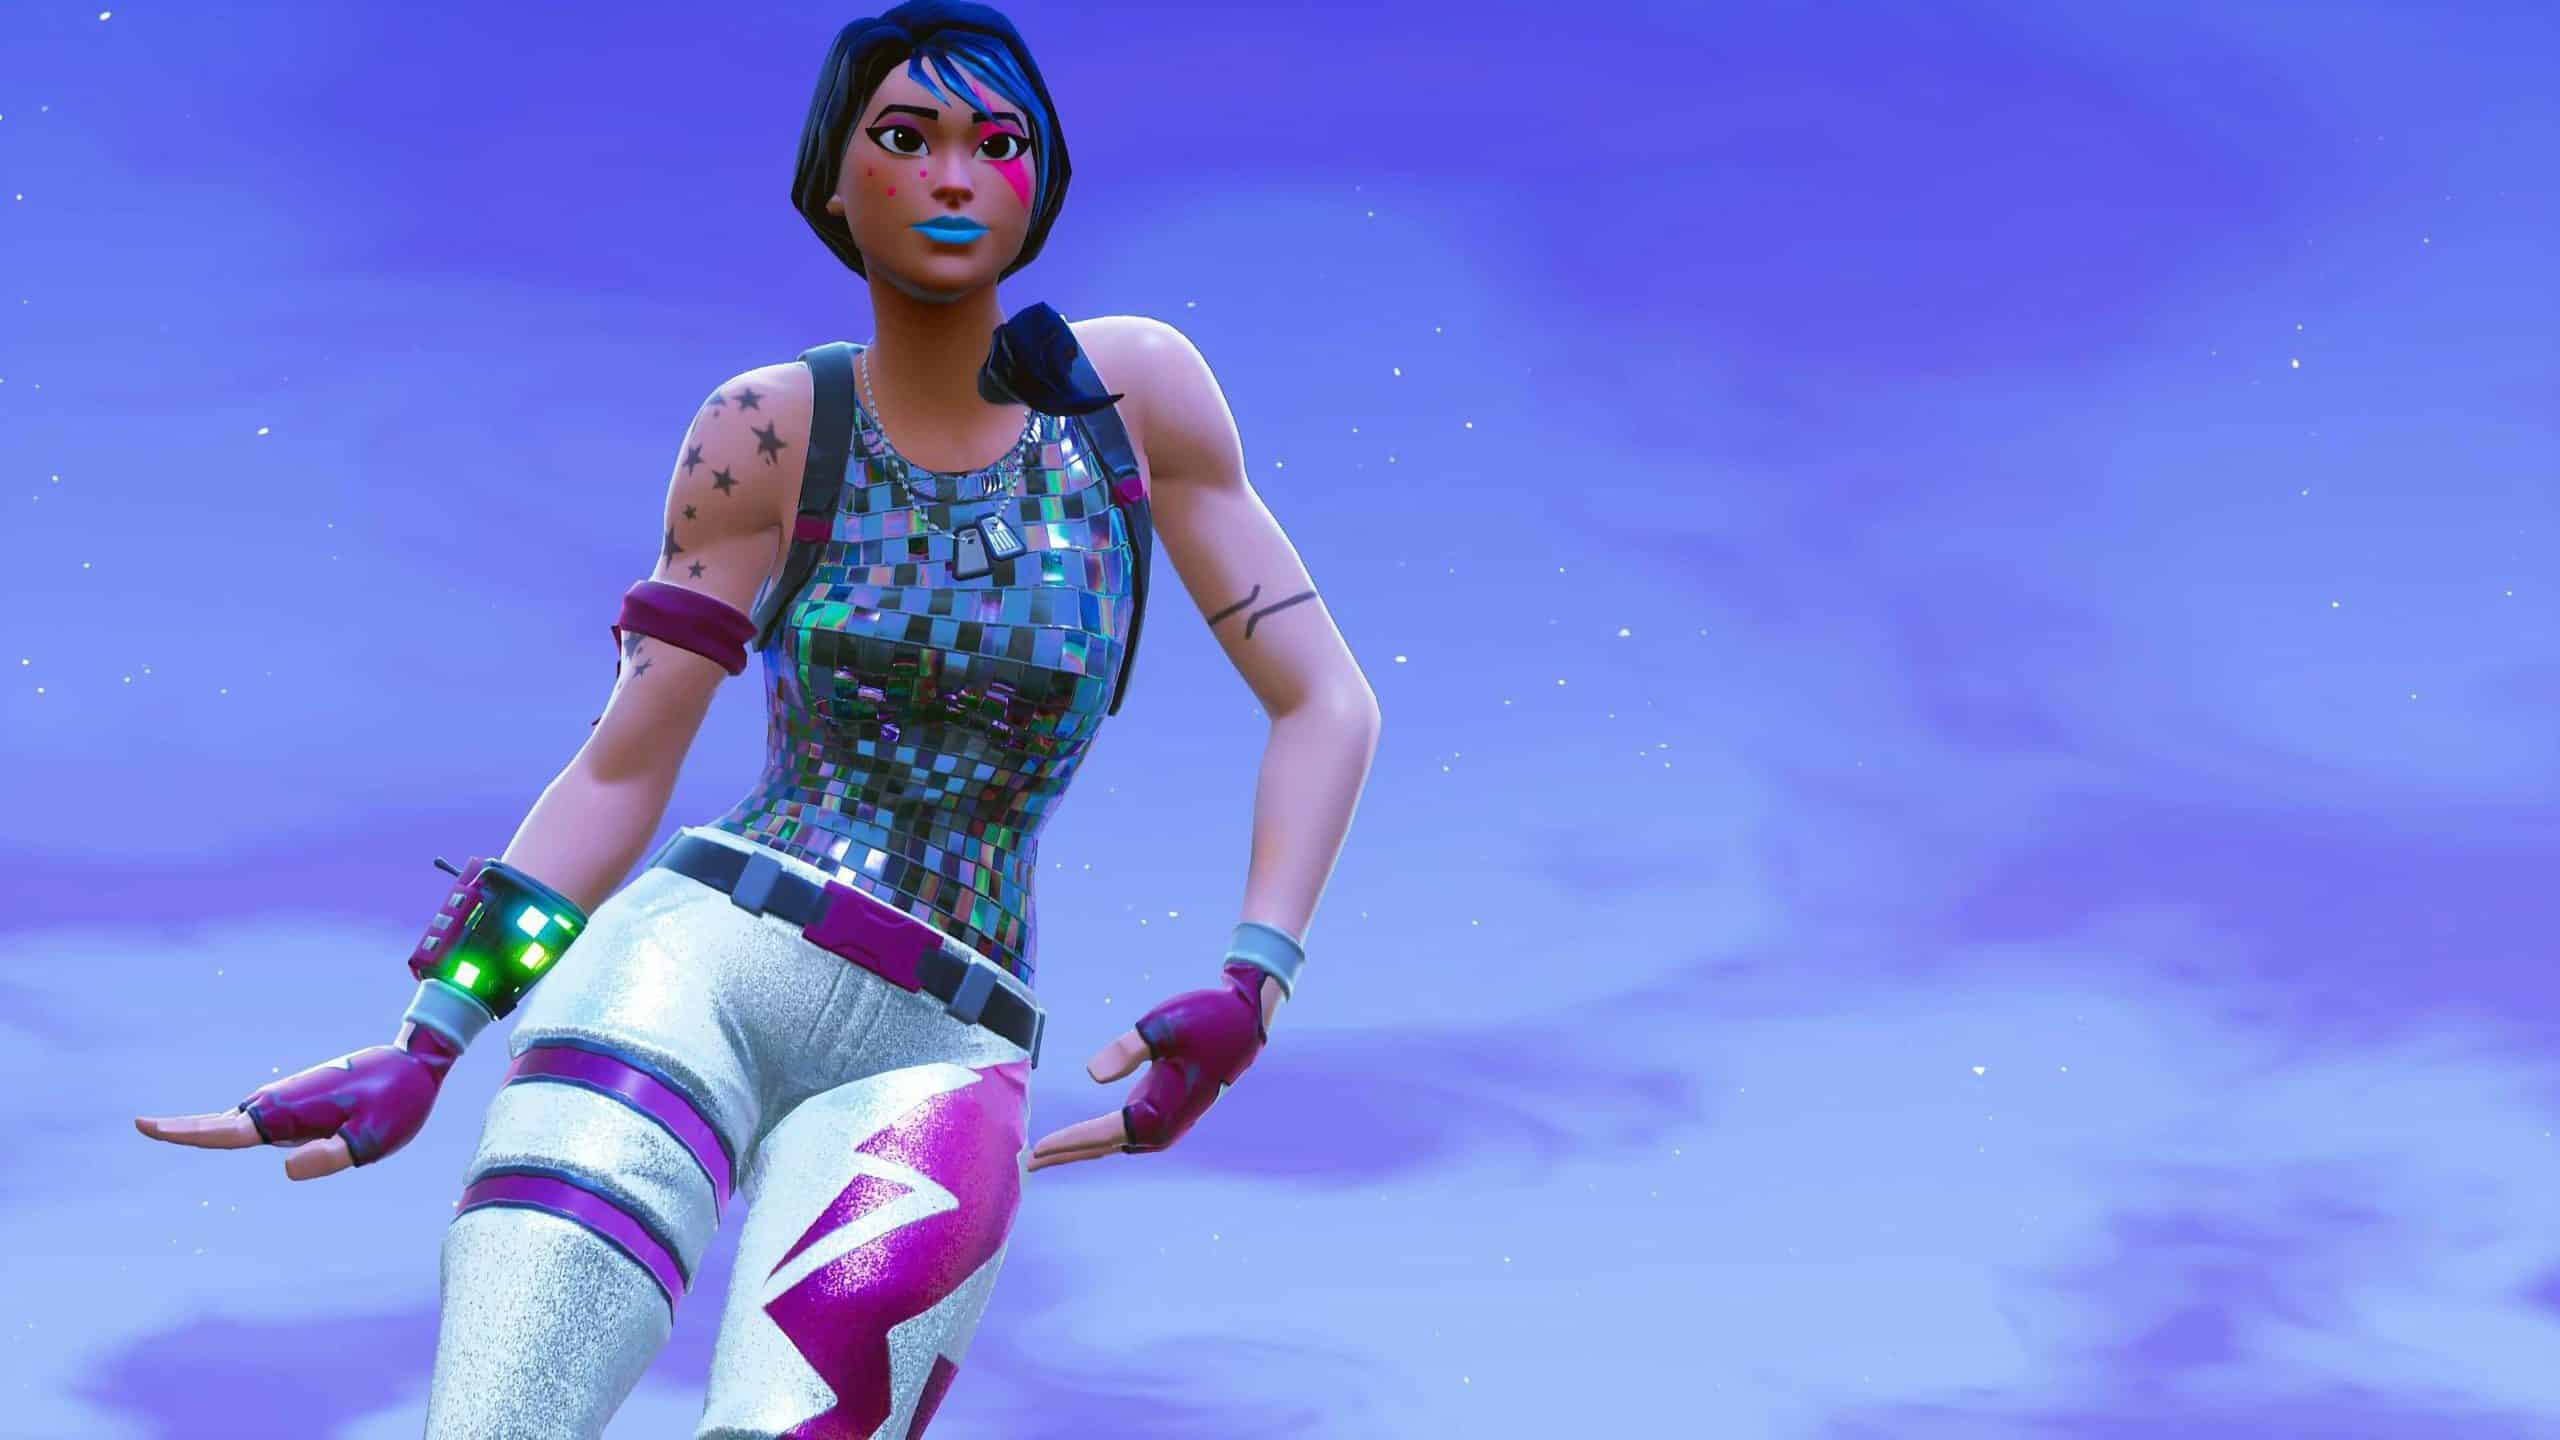 Sparkle Specialist Fortnite skins and character